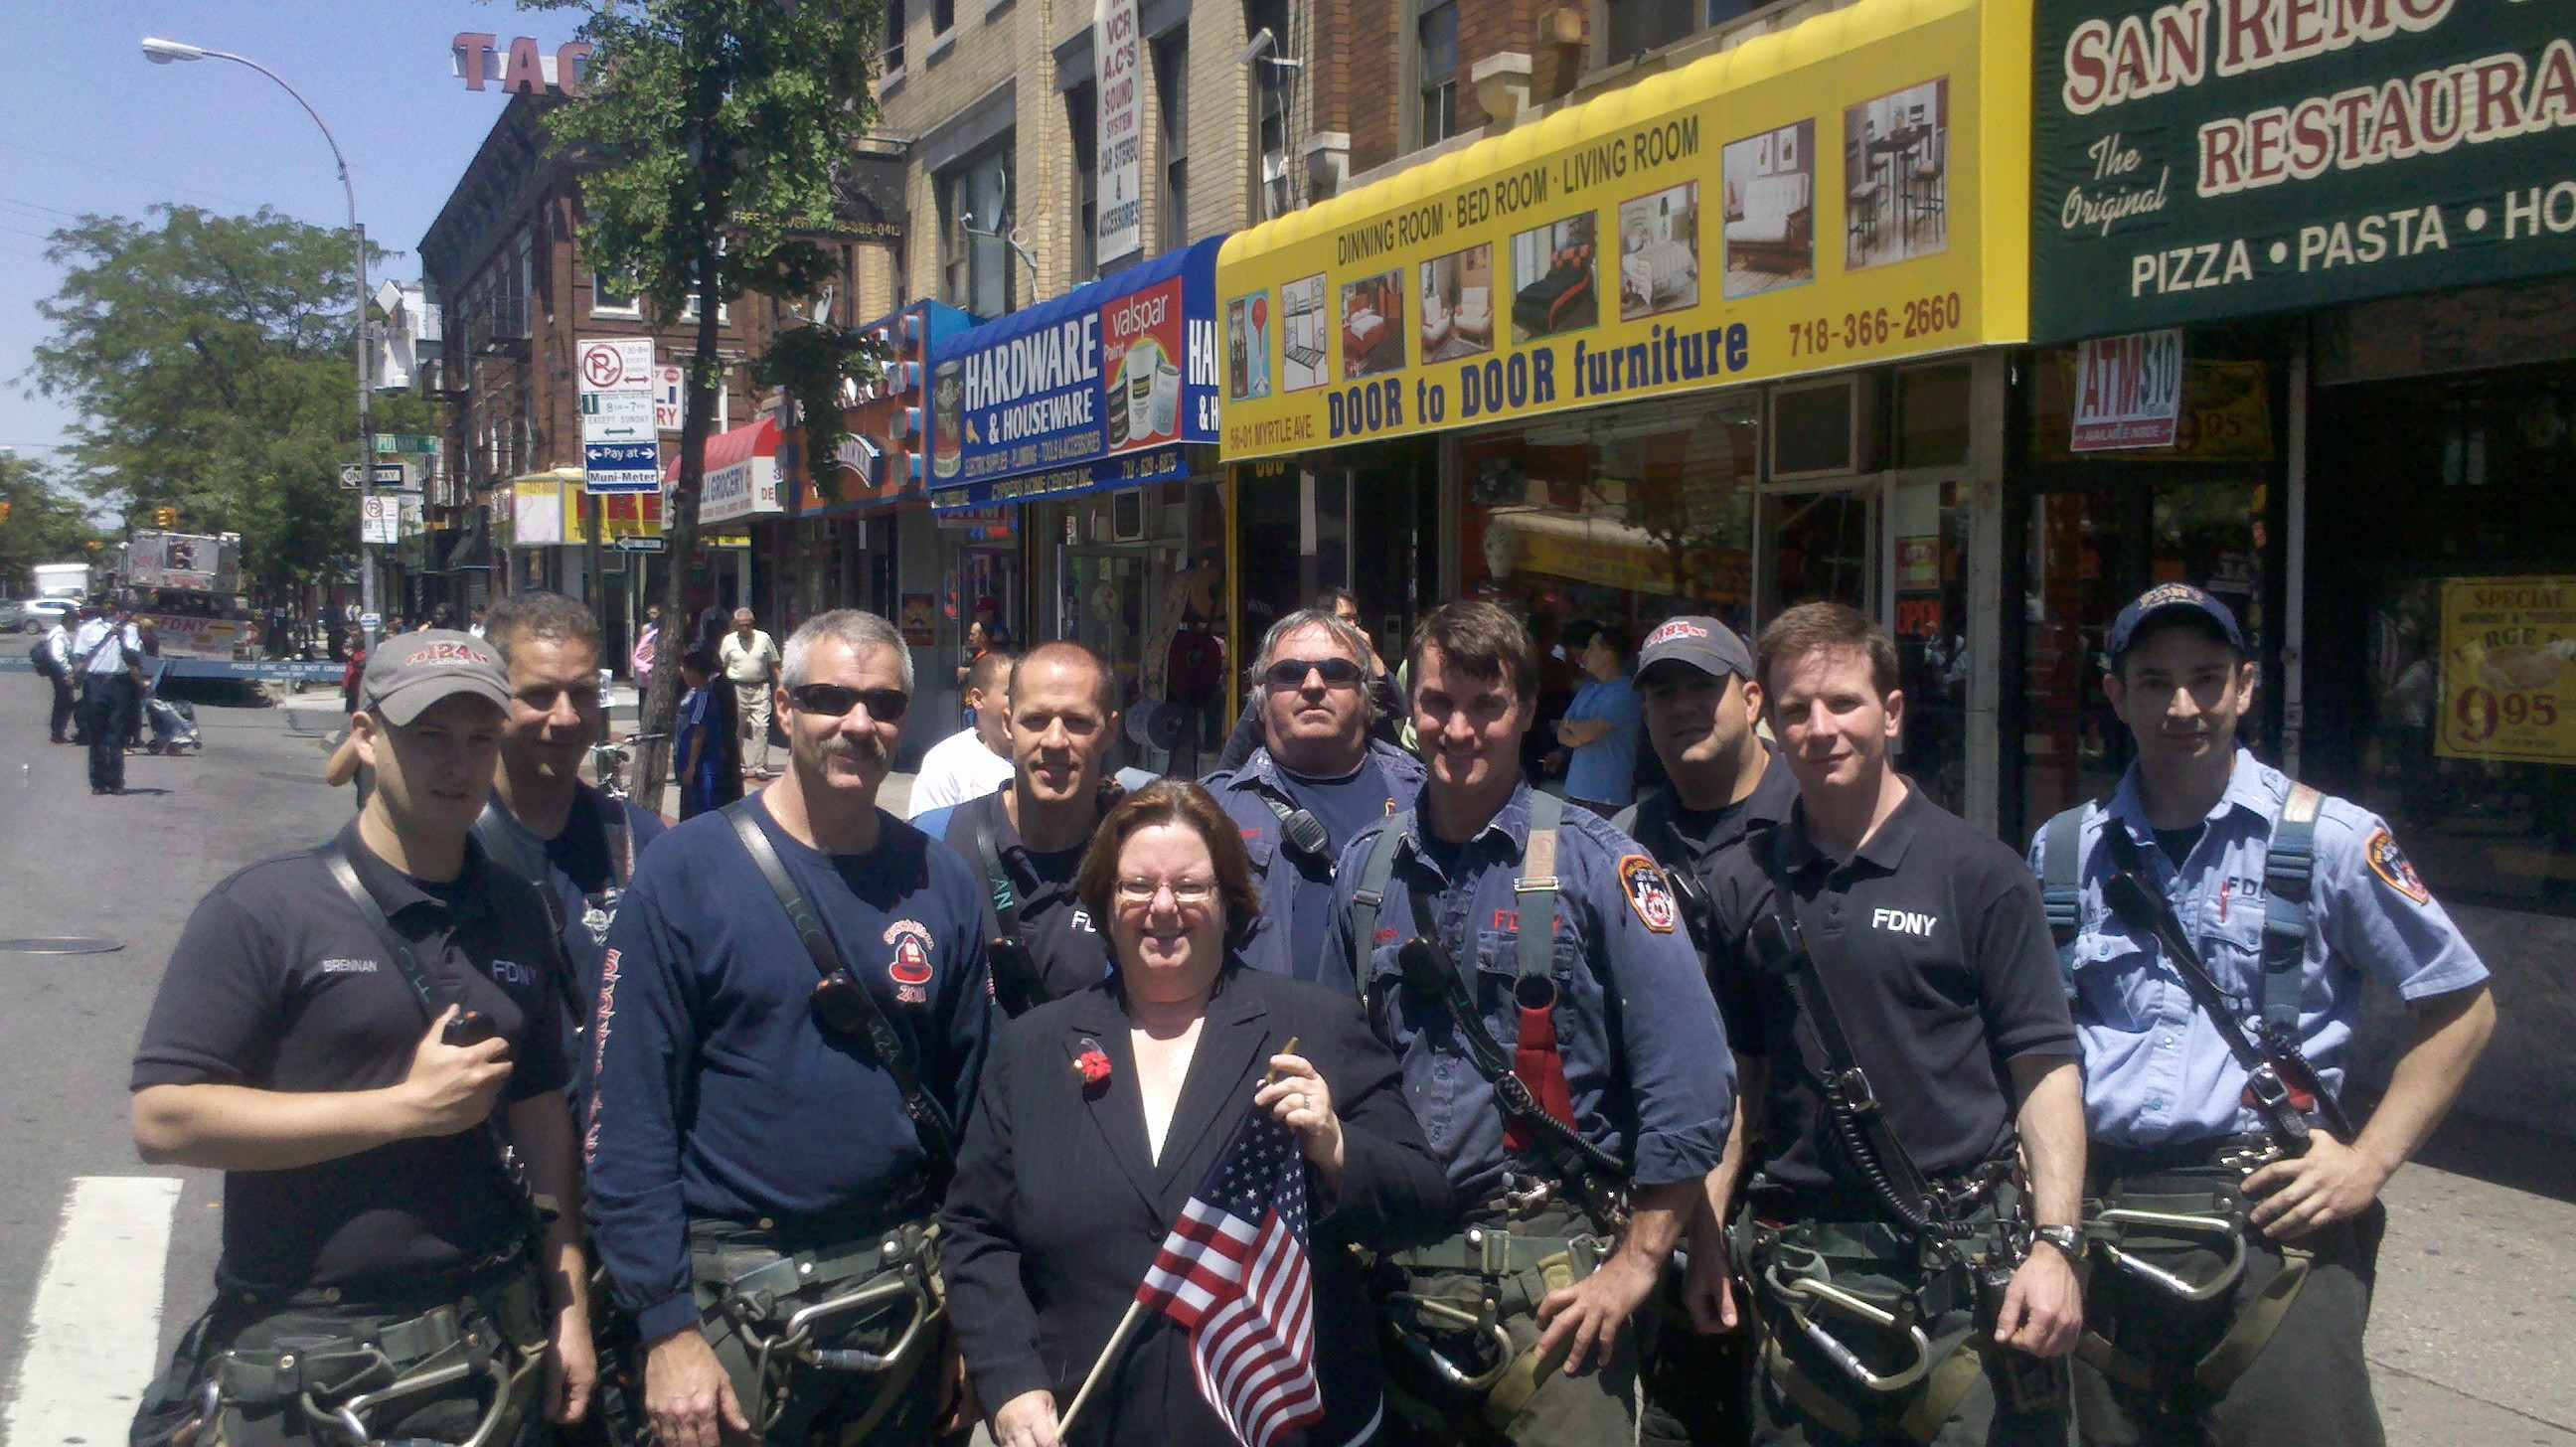 Assemblywoman Nolan marched in the Ridgewood Memorial Day Parade and stopped at her local firehouse to thank these firefighters for their service, many of whom served in the armed services.